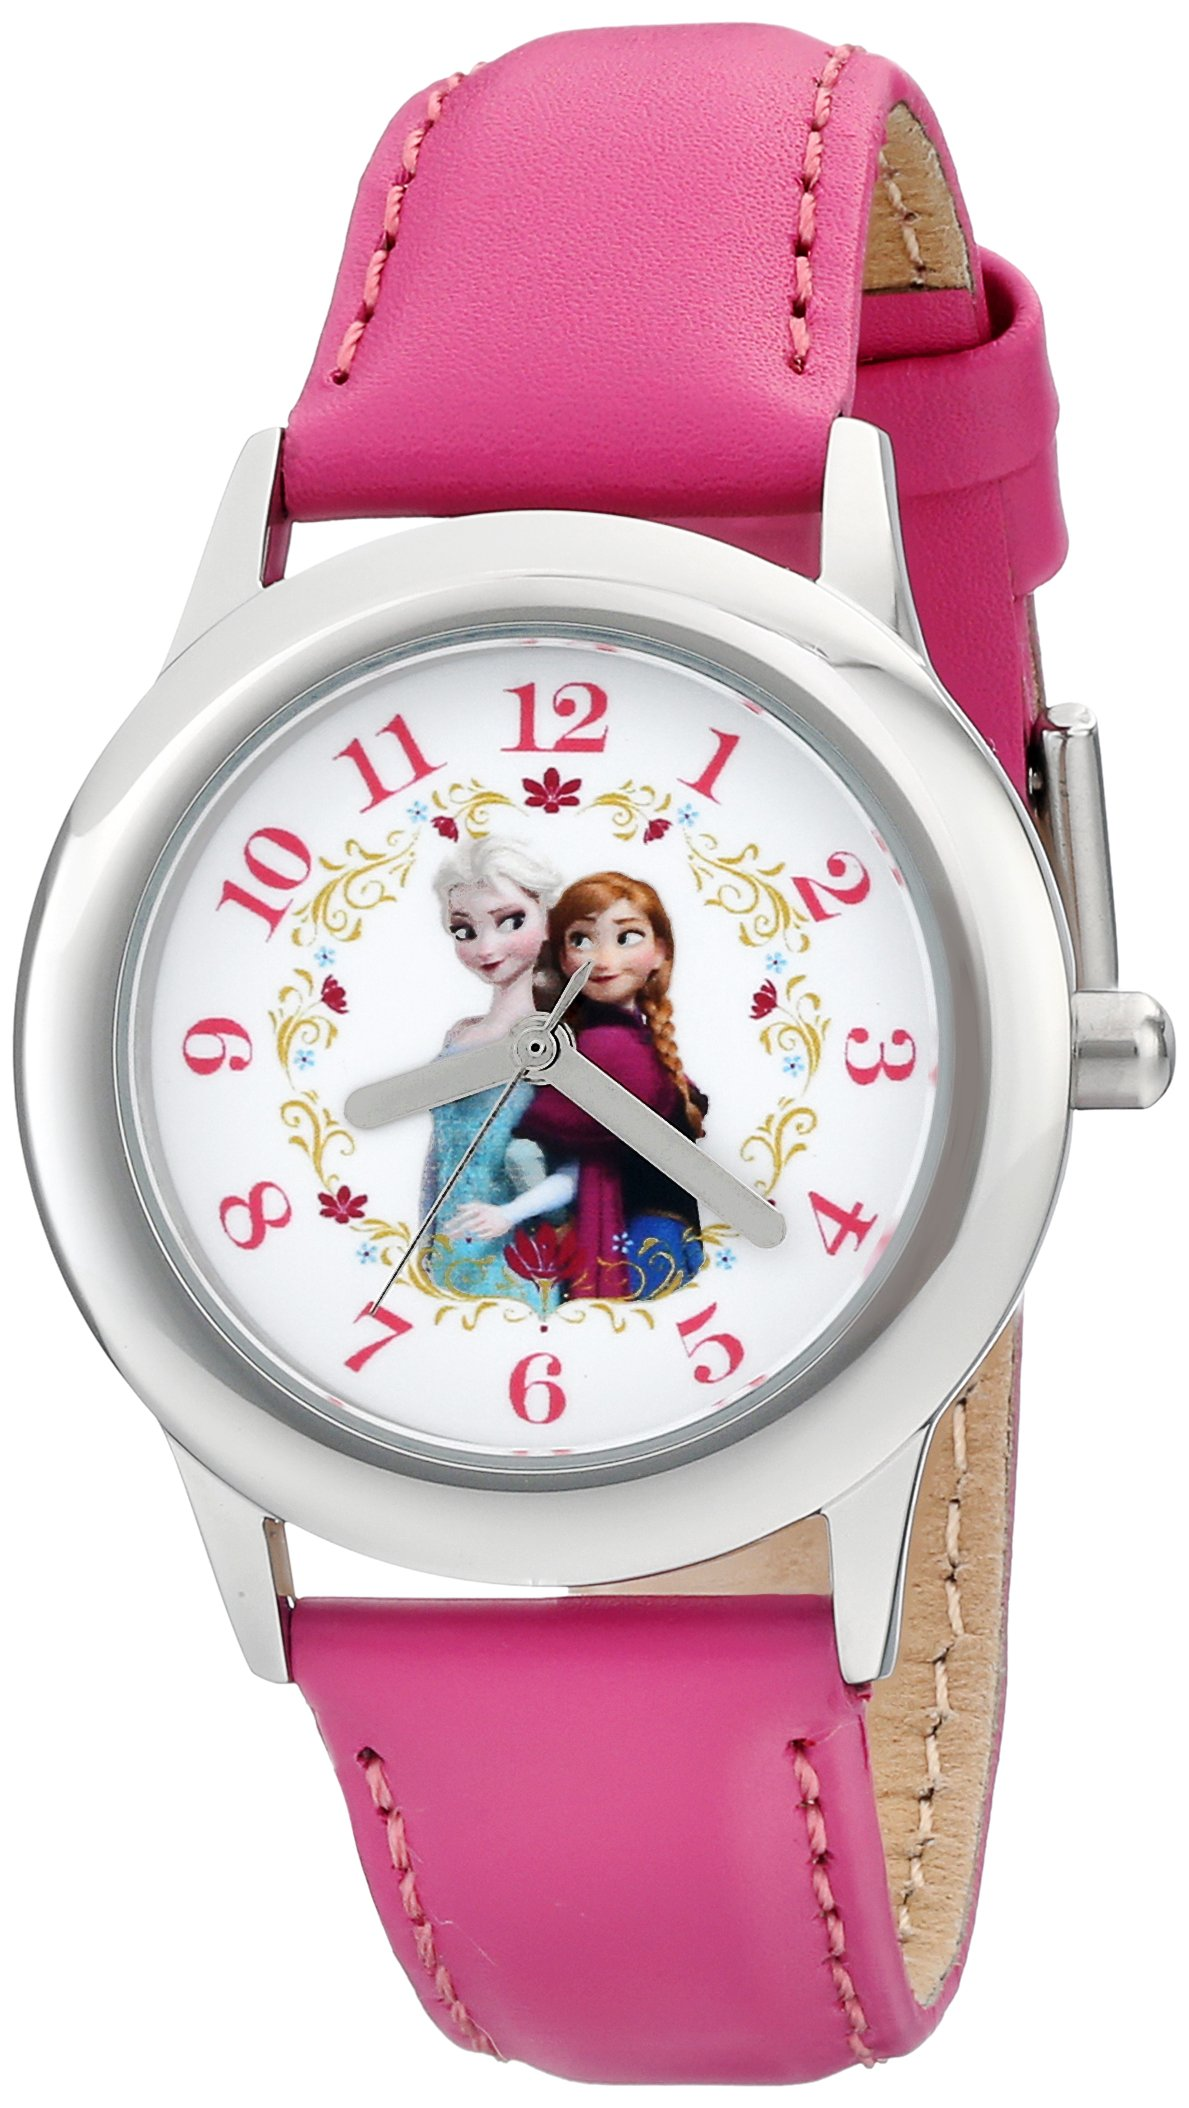 Disney Kids' W001793 ''Frozen Elsa and Anna'' Stainless Steel Watch with Pink Leather Band by Disney